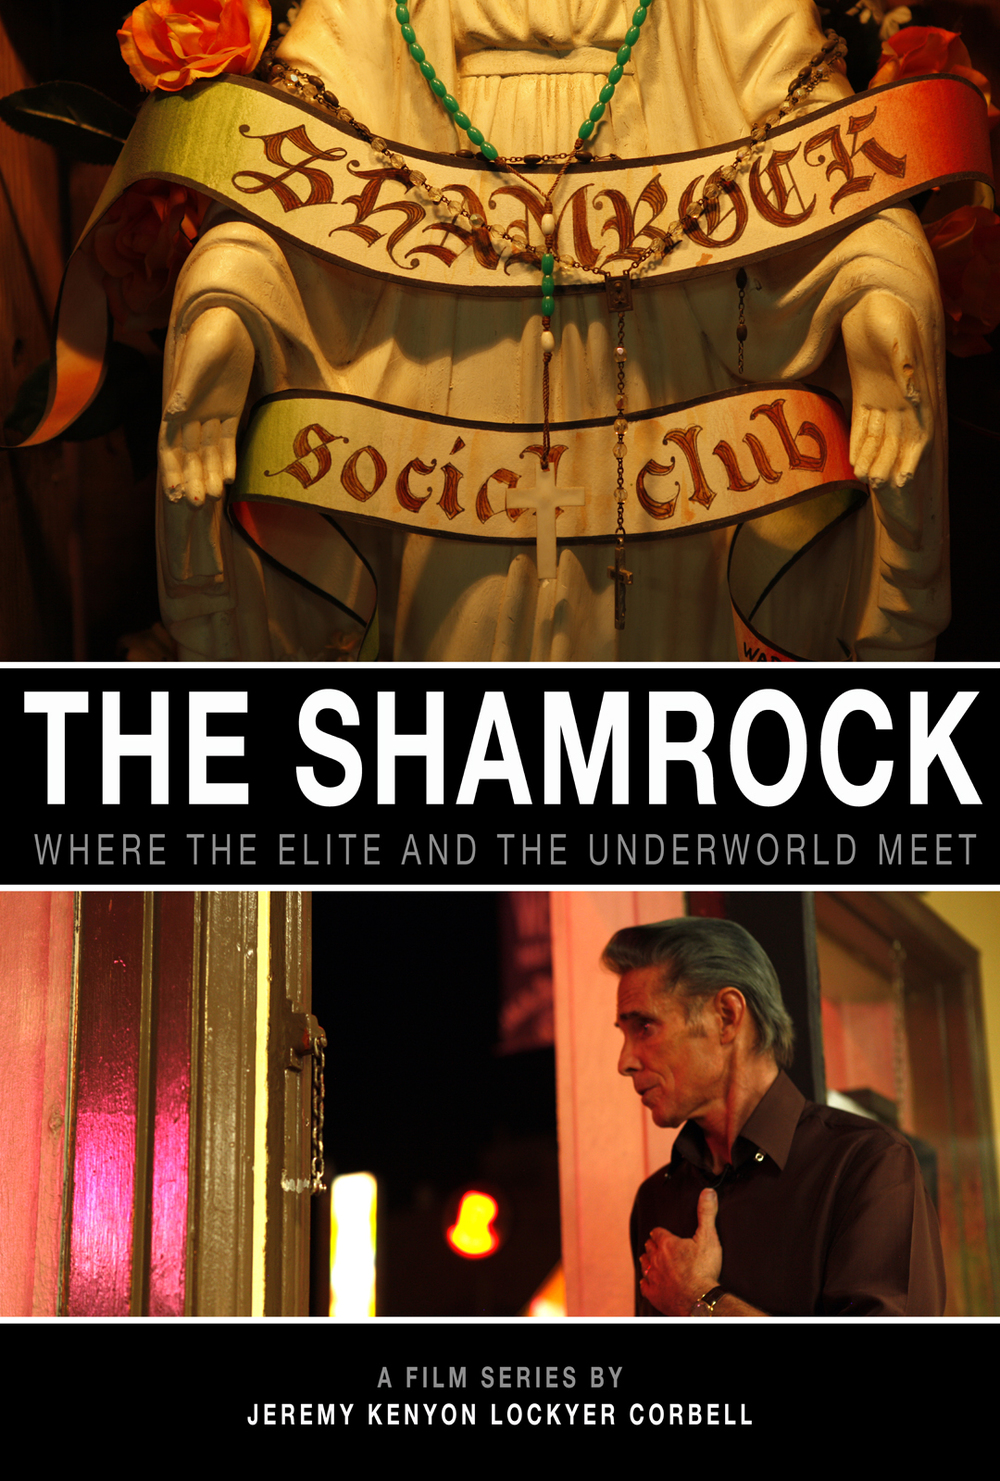 SHAMROCK MOVIE POSTER